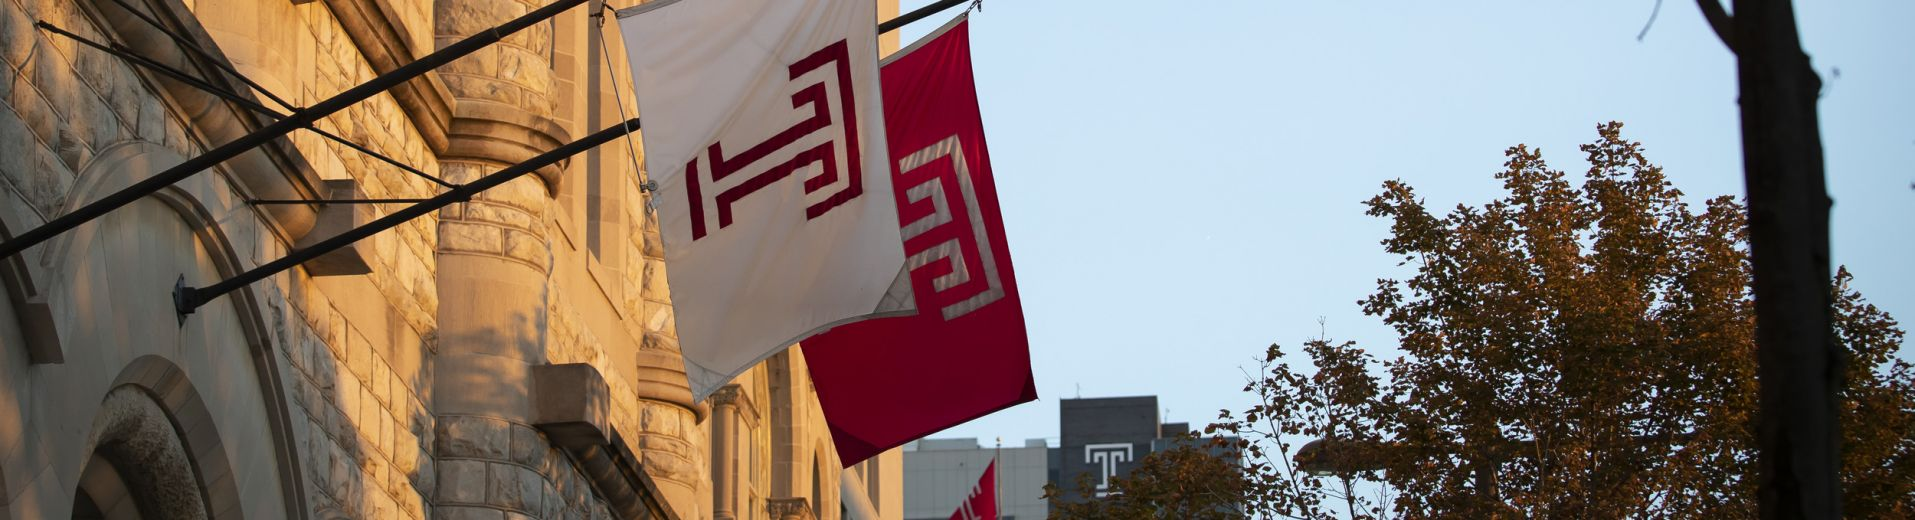 Temple Flags in front of Temple Baptist Church